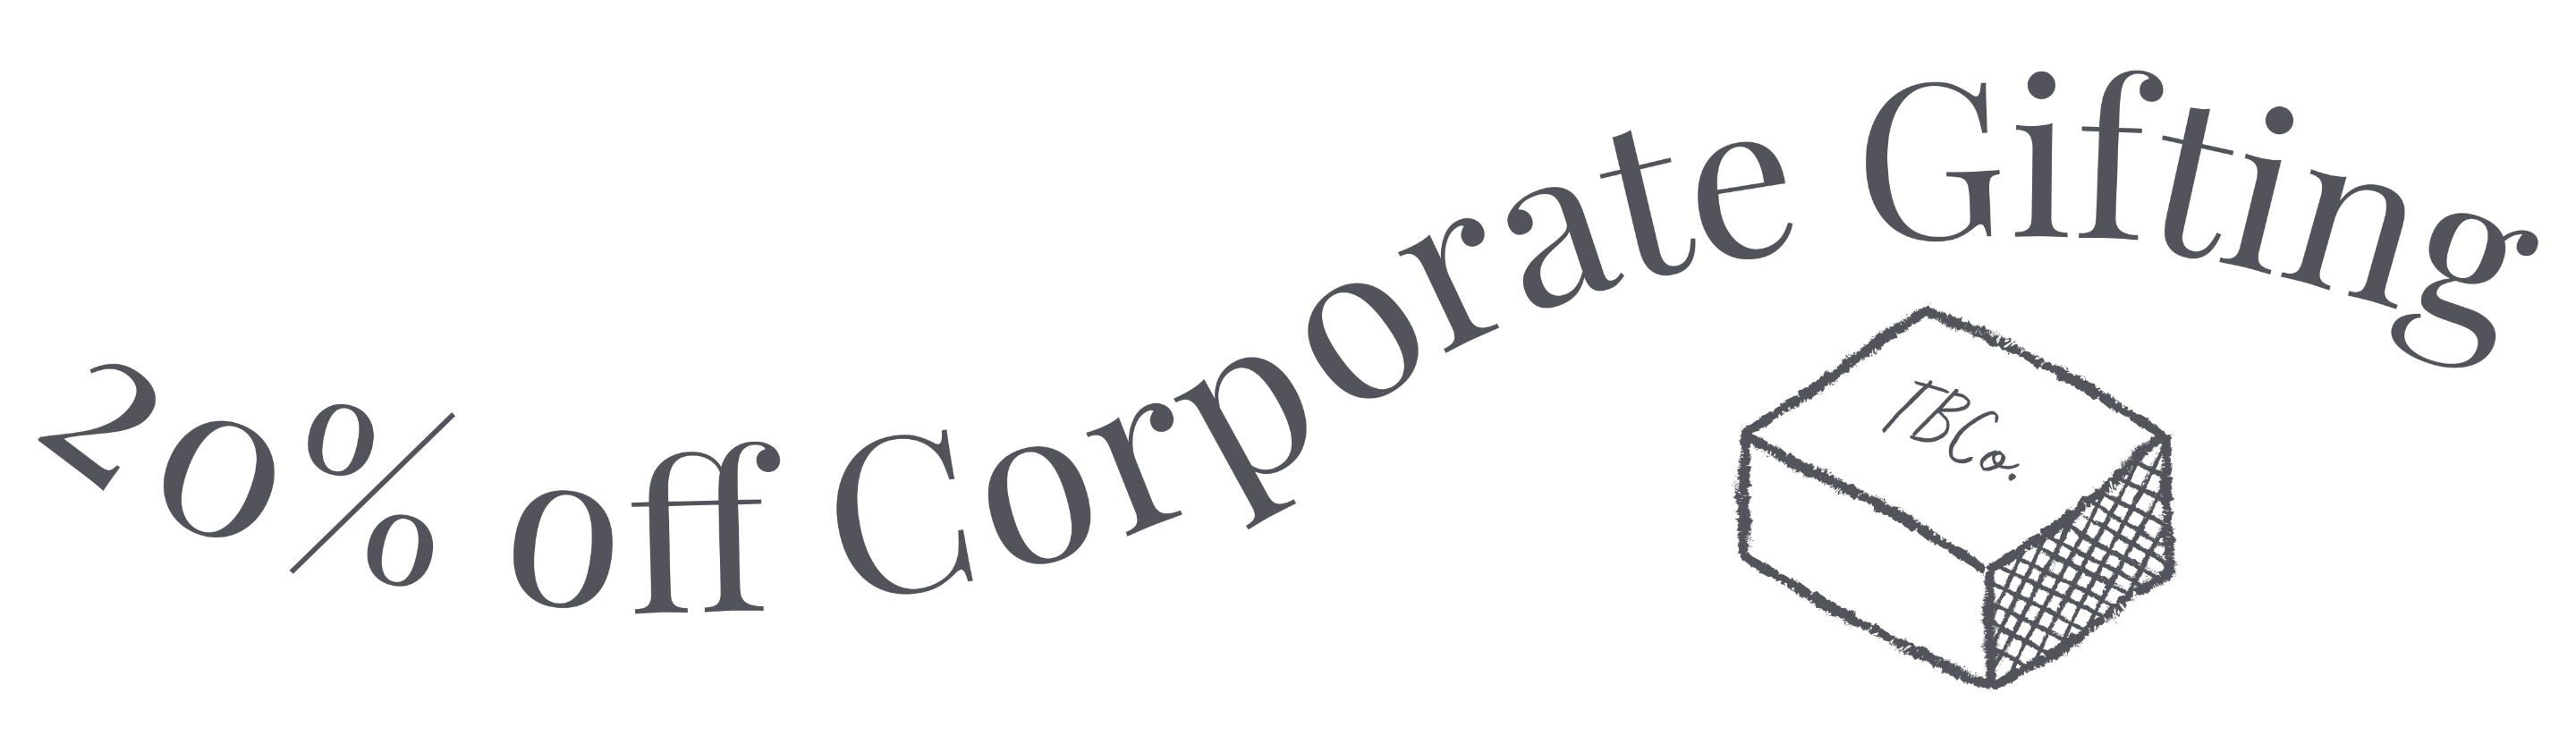 20% off Corporate Gifting banner